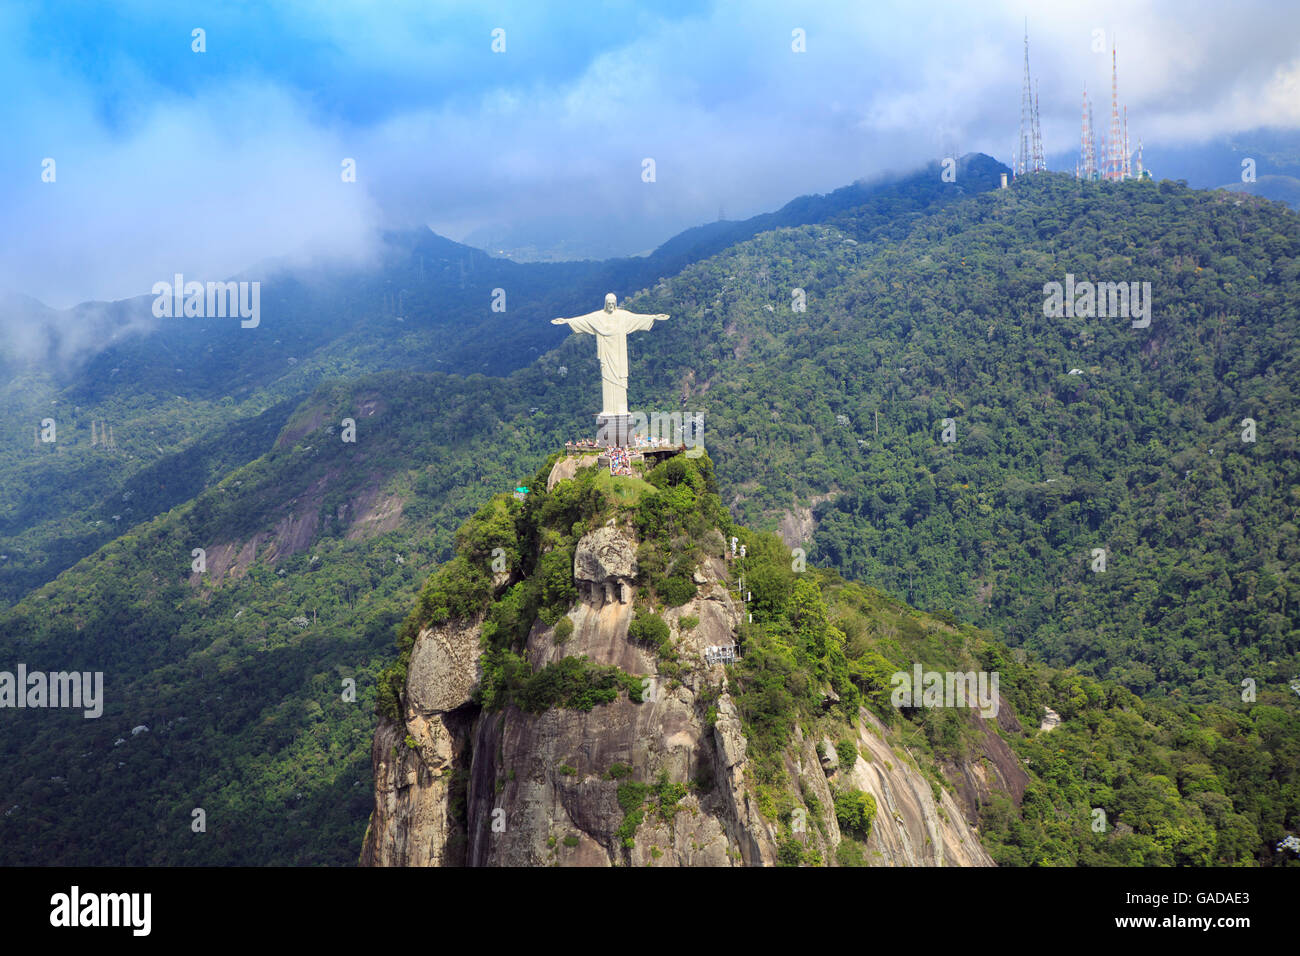 View of the Christ statue in Tijuca national park, on Corcovado mountain, Rio de Janeiro, Brazil Stock Photo